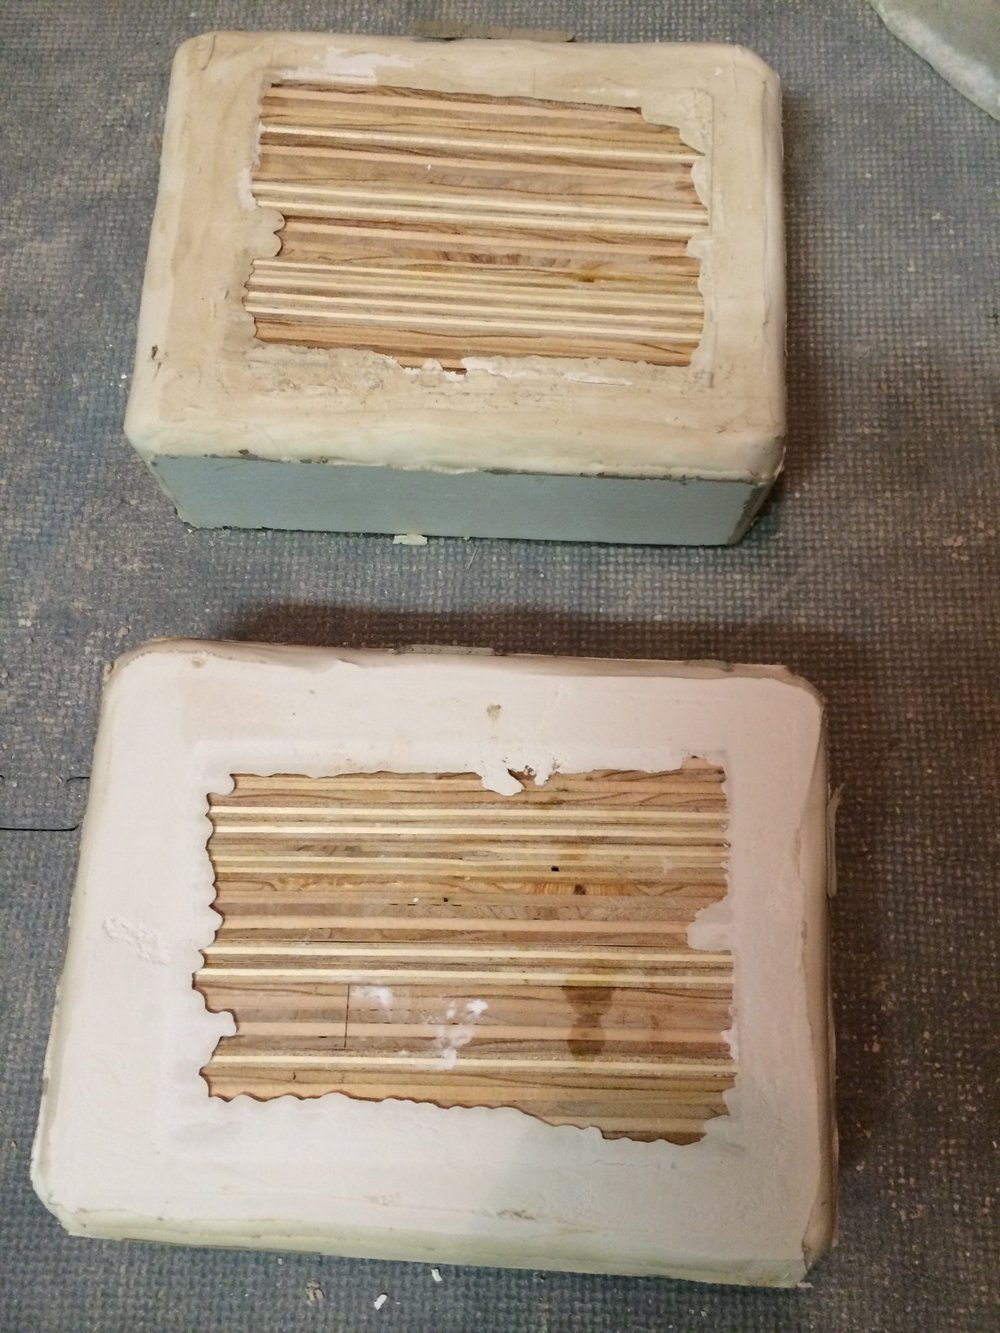 Two molds with the wooden positives still in them. Turns out it was not easy to get the positives out...